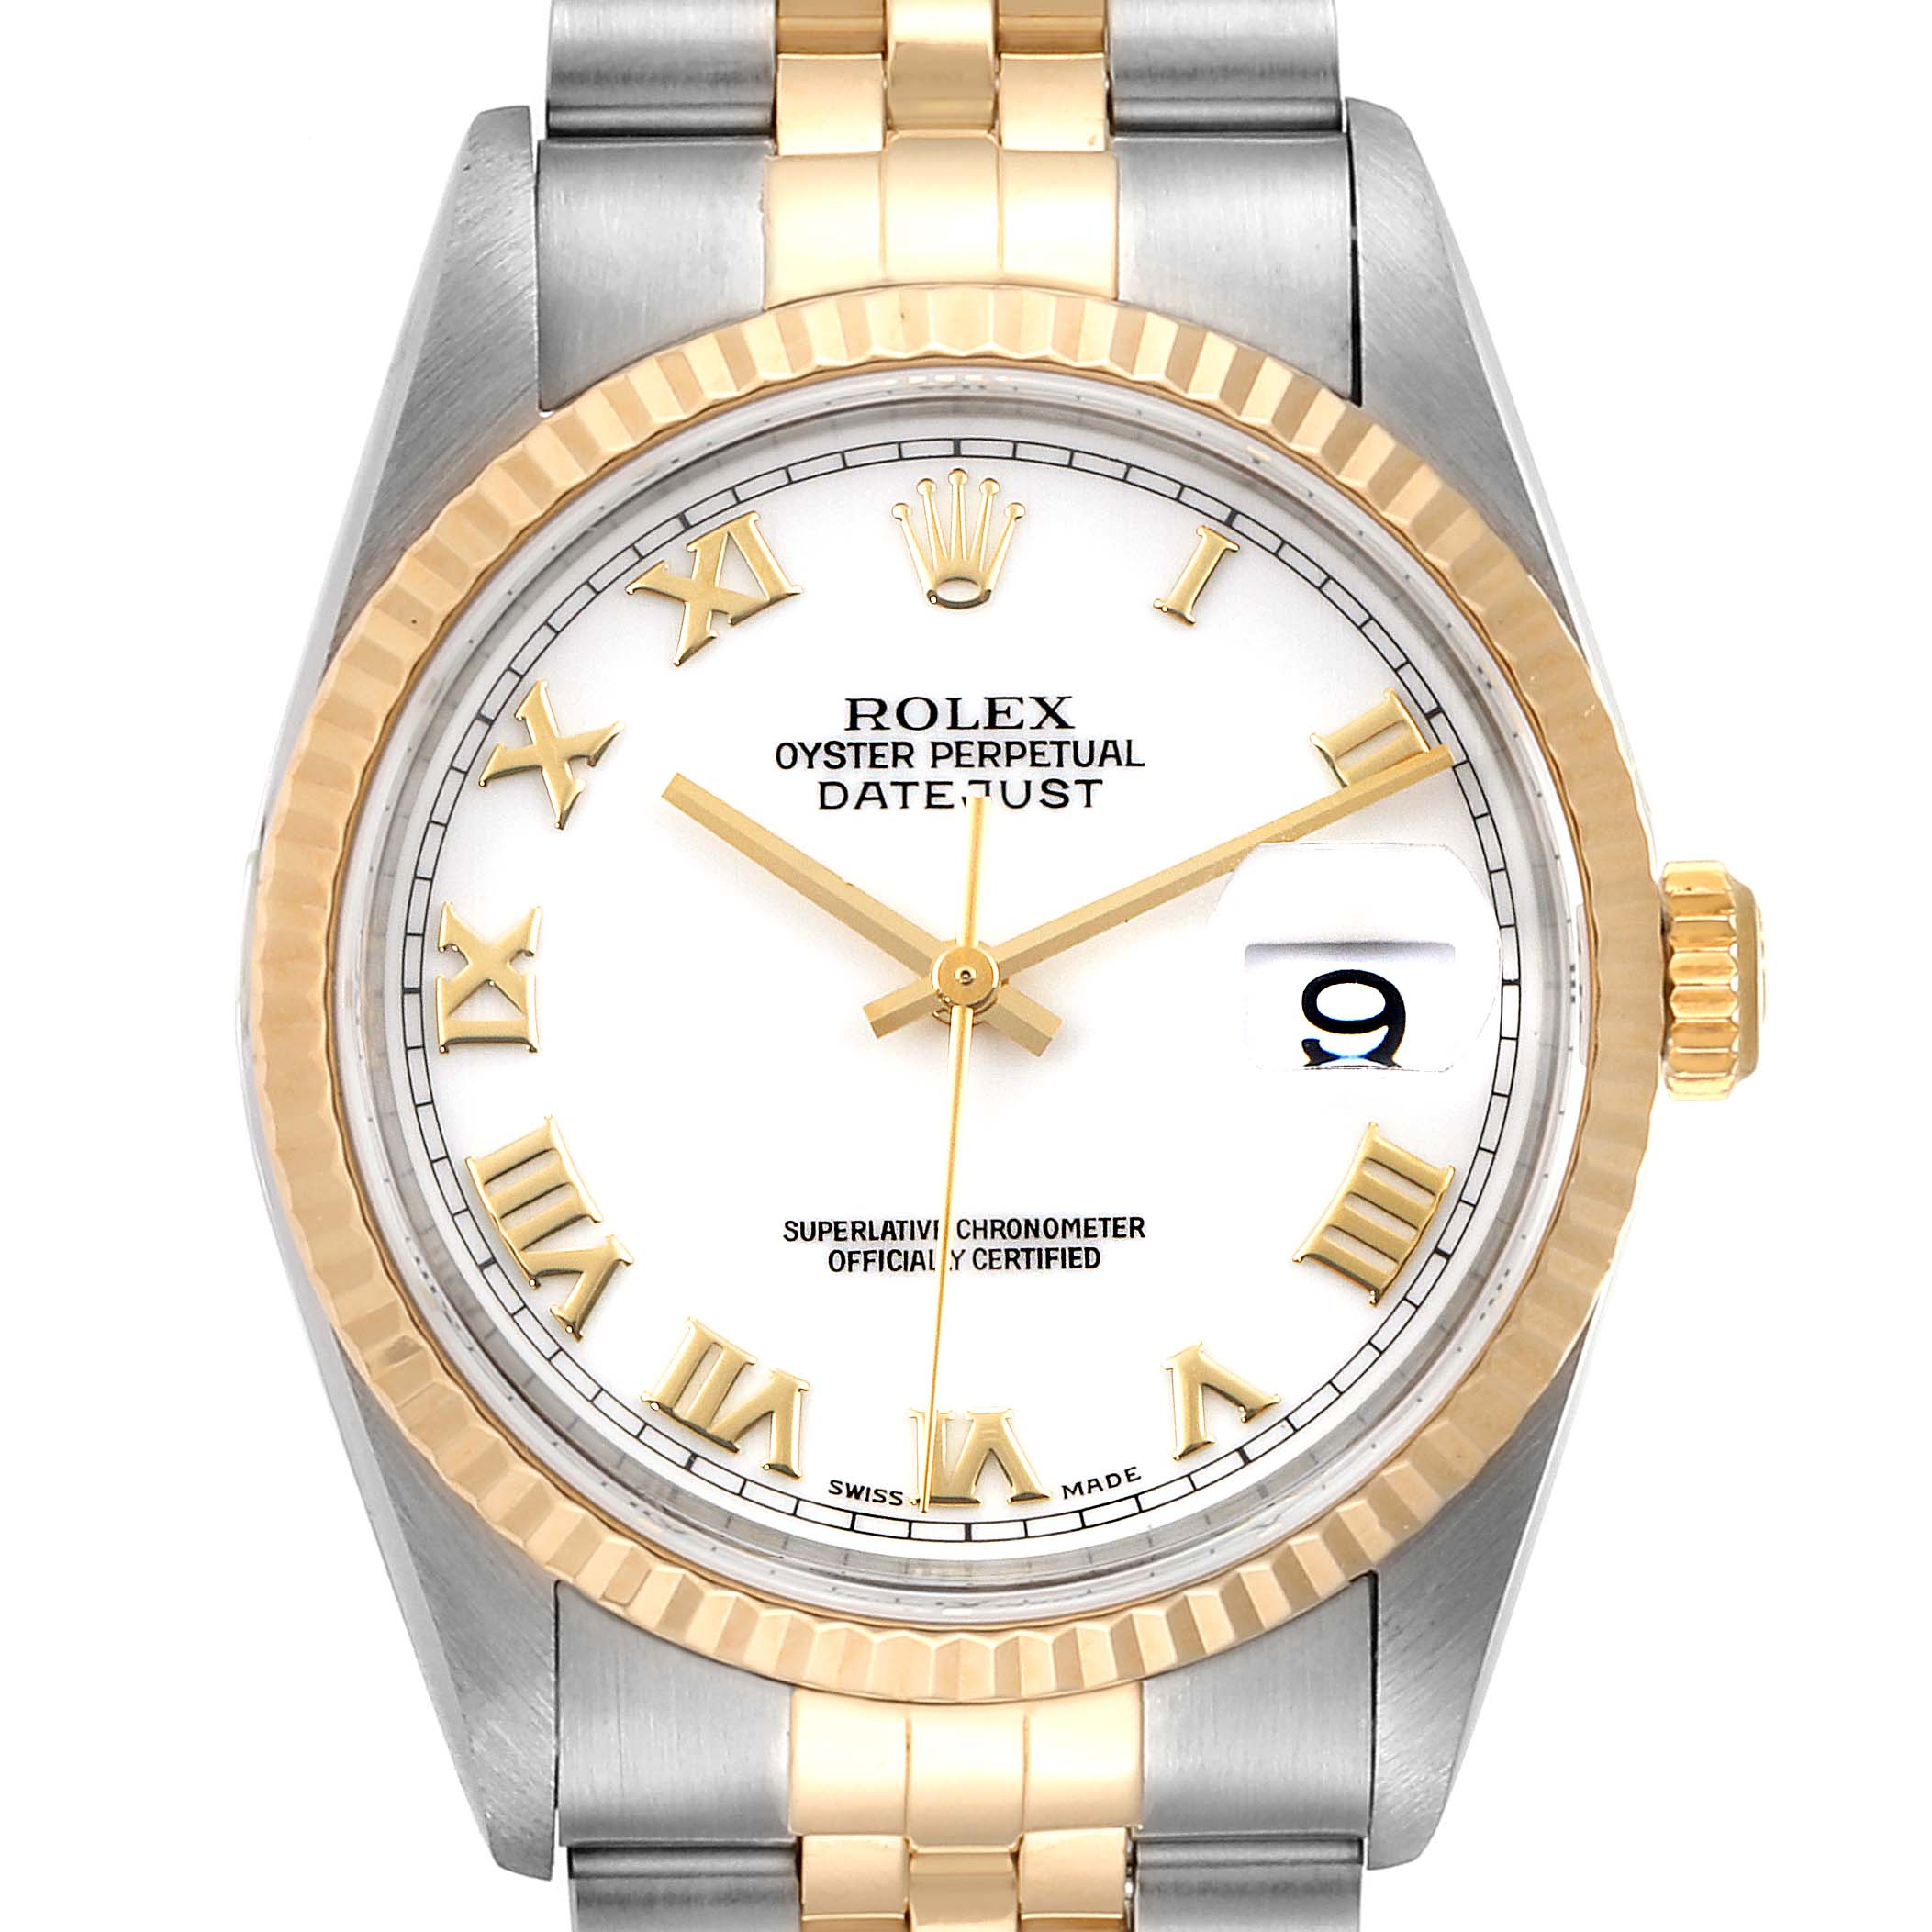 Photo of Rolex Datejust Steel Yellow Gold White Roman Dial Mens Watch 16233 Papers